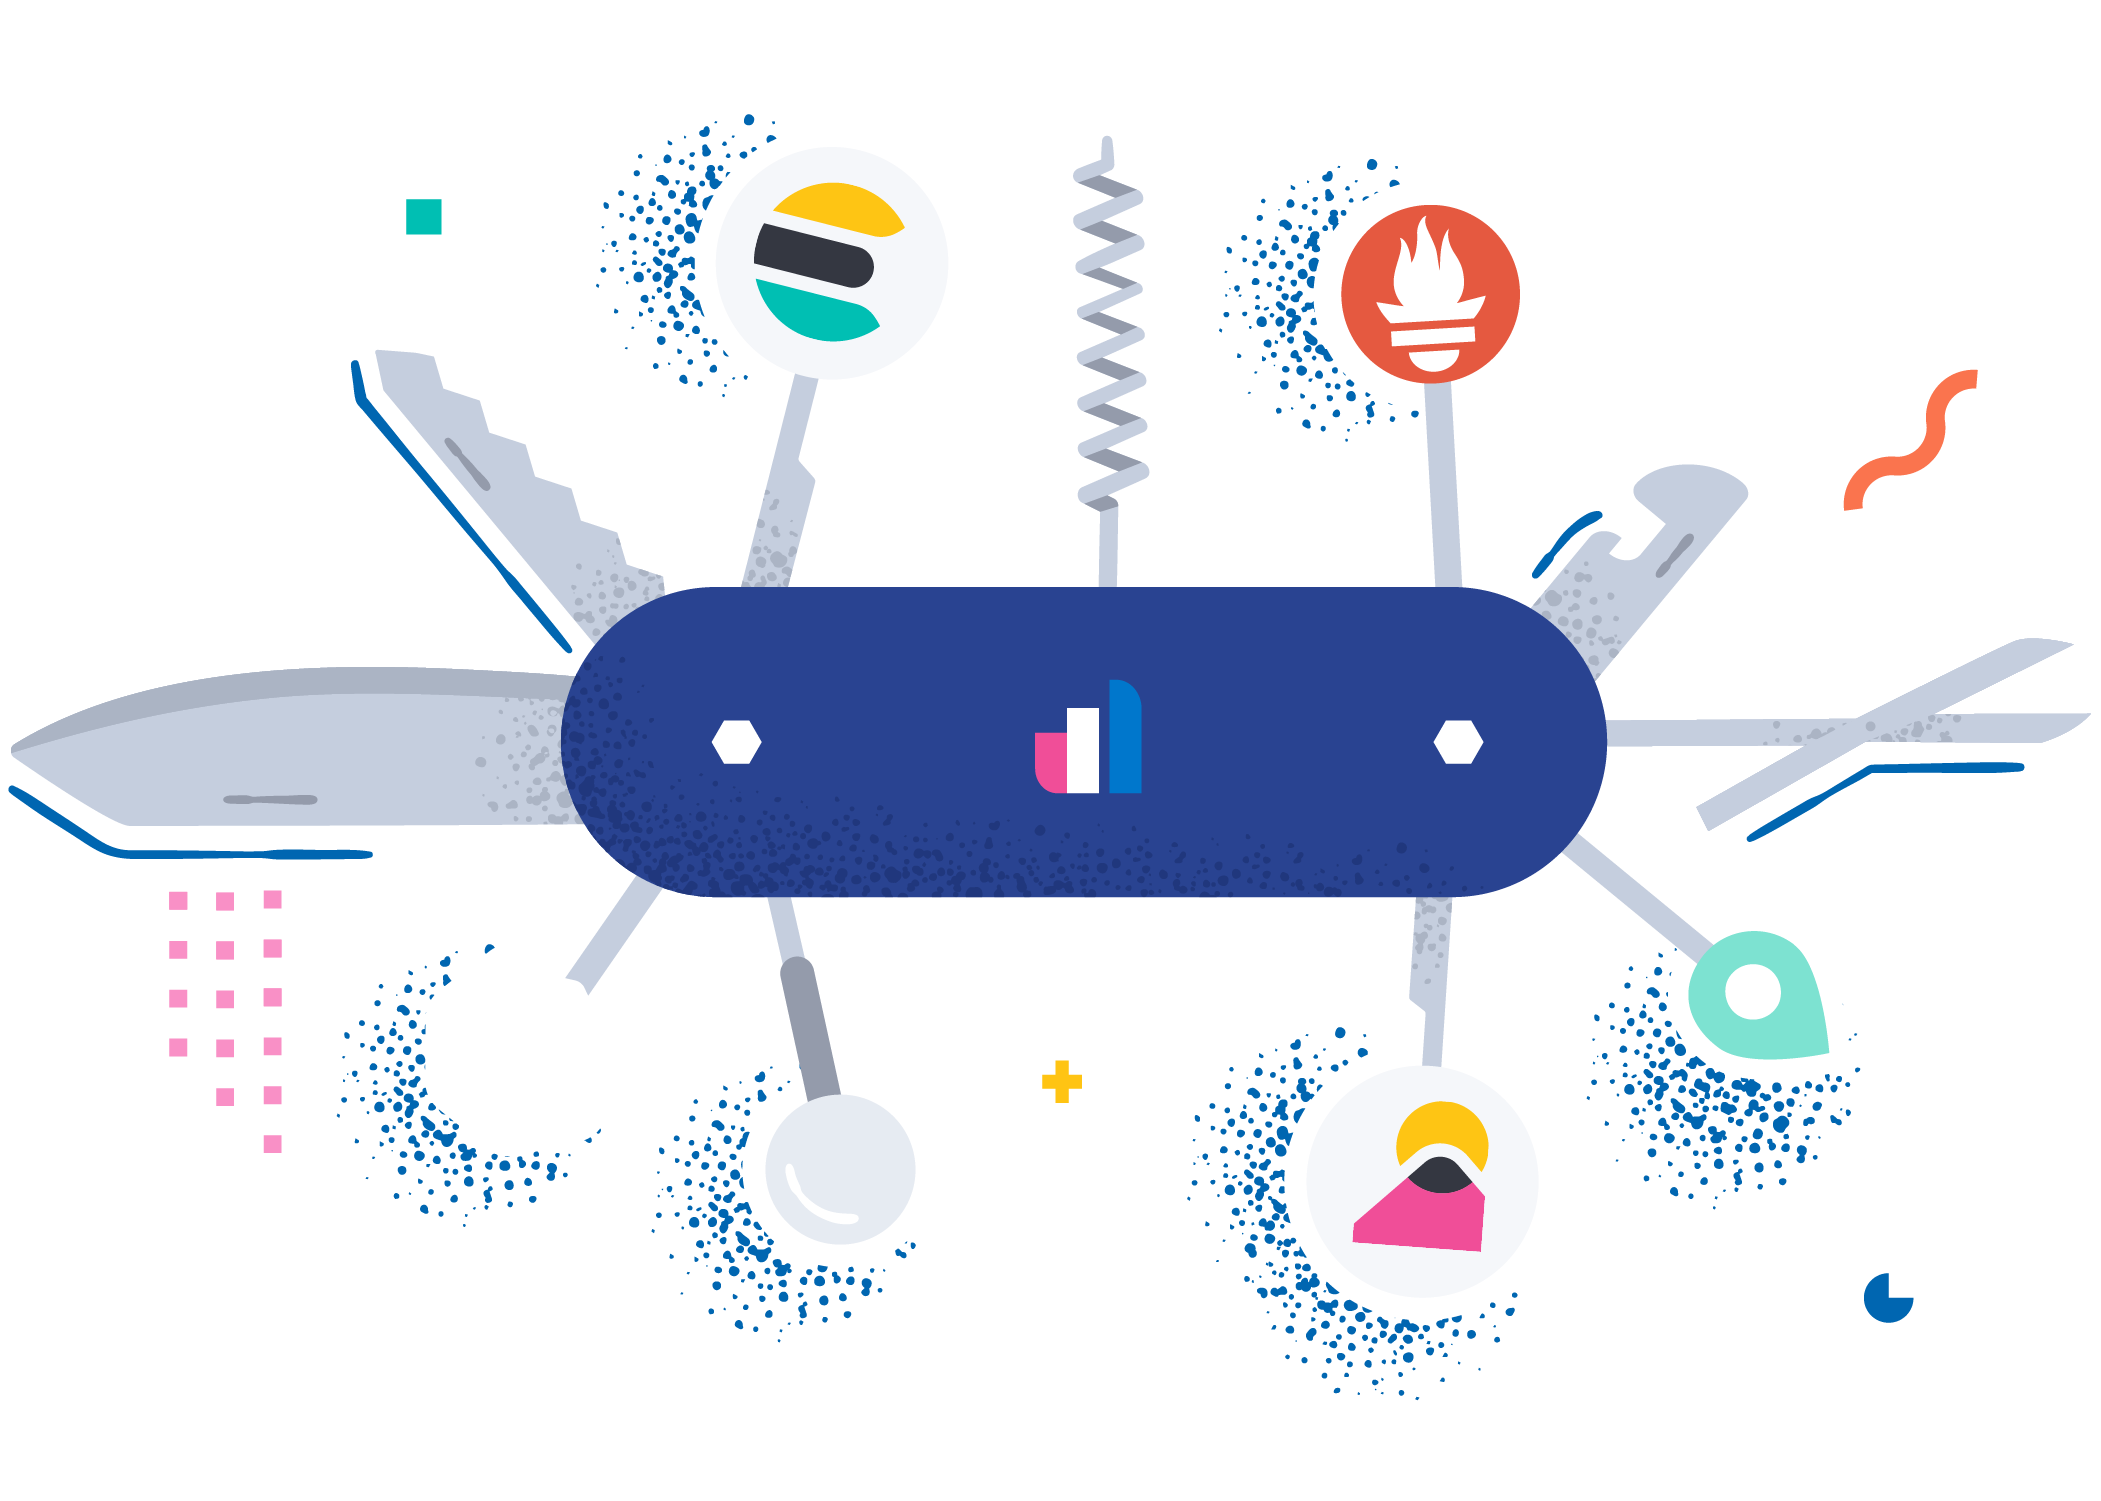 header-illustration-infra-swiss_army_knife-blue-2101x1501px.png